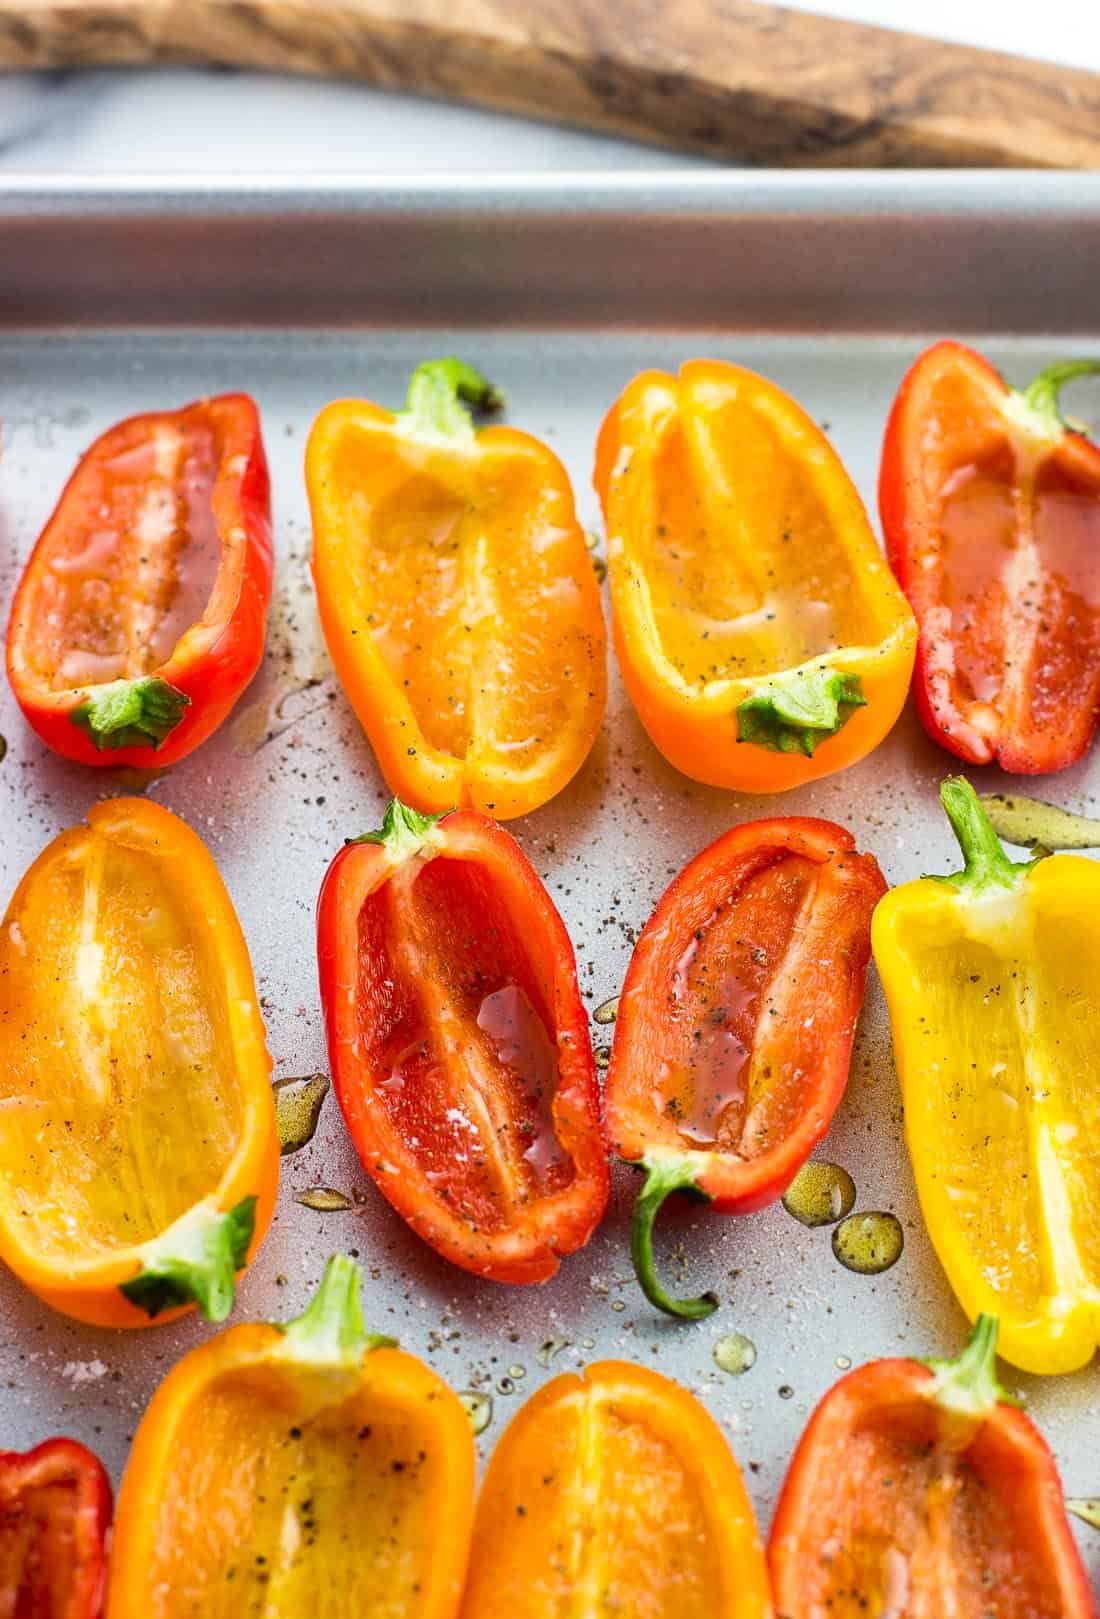 Roasted mini sweet pepper halves on a baking sheet prior to being stuffed